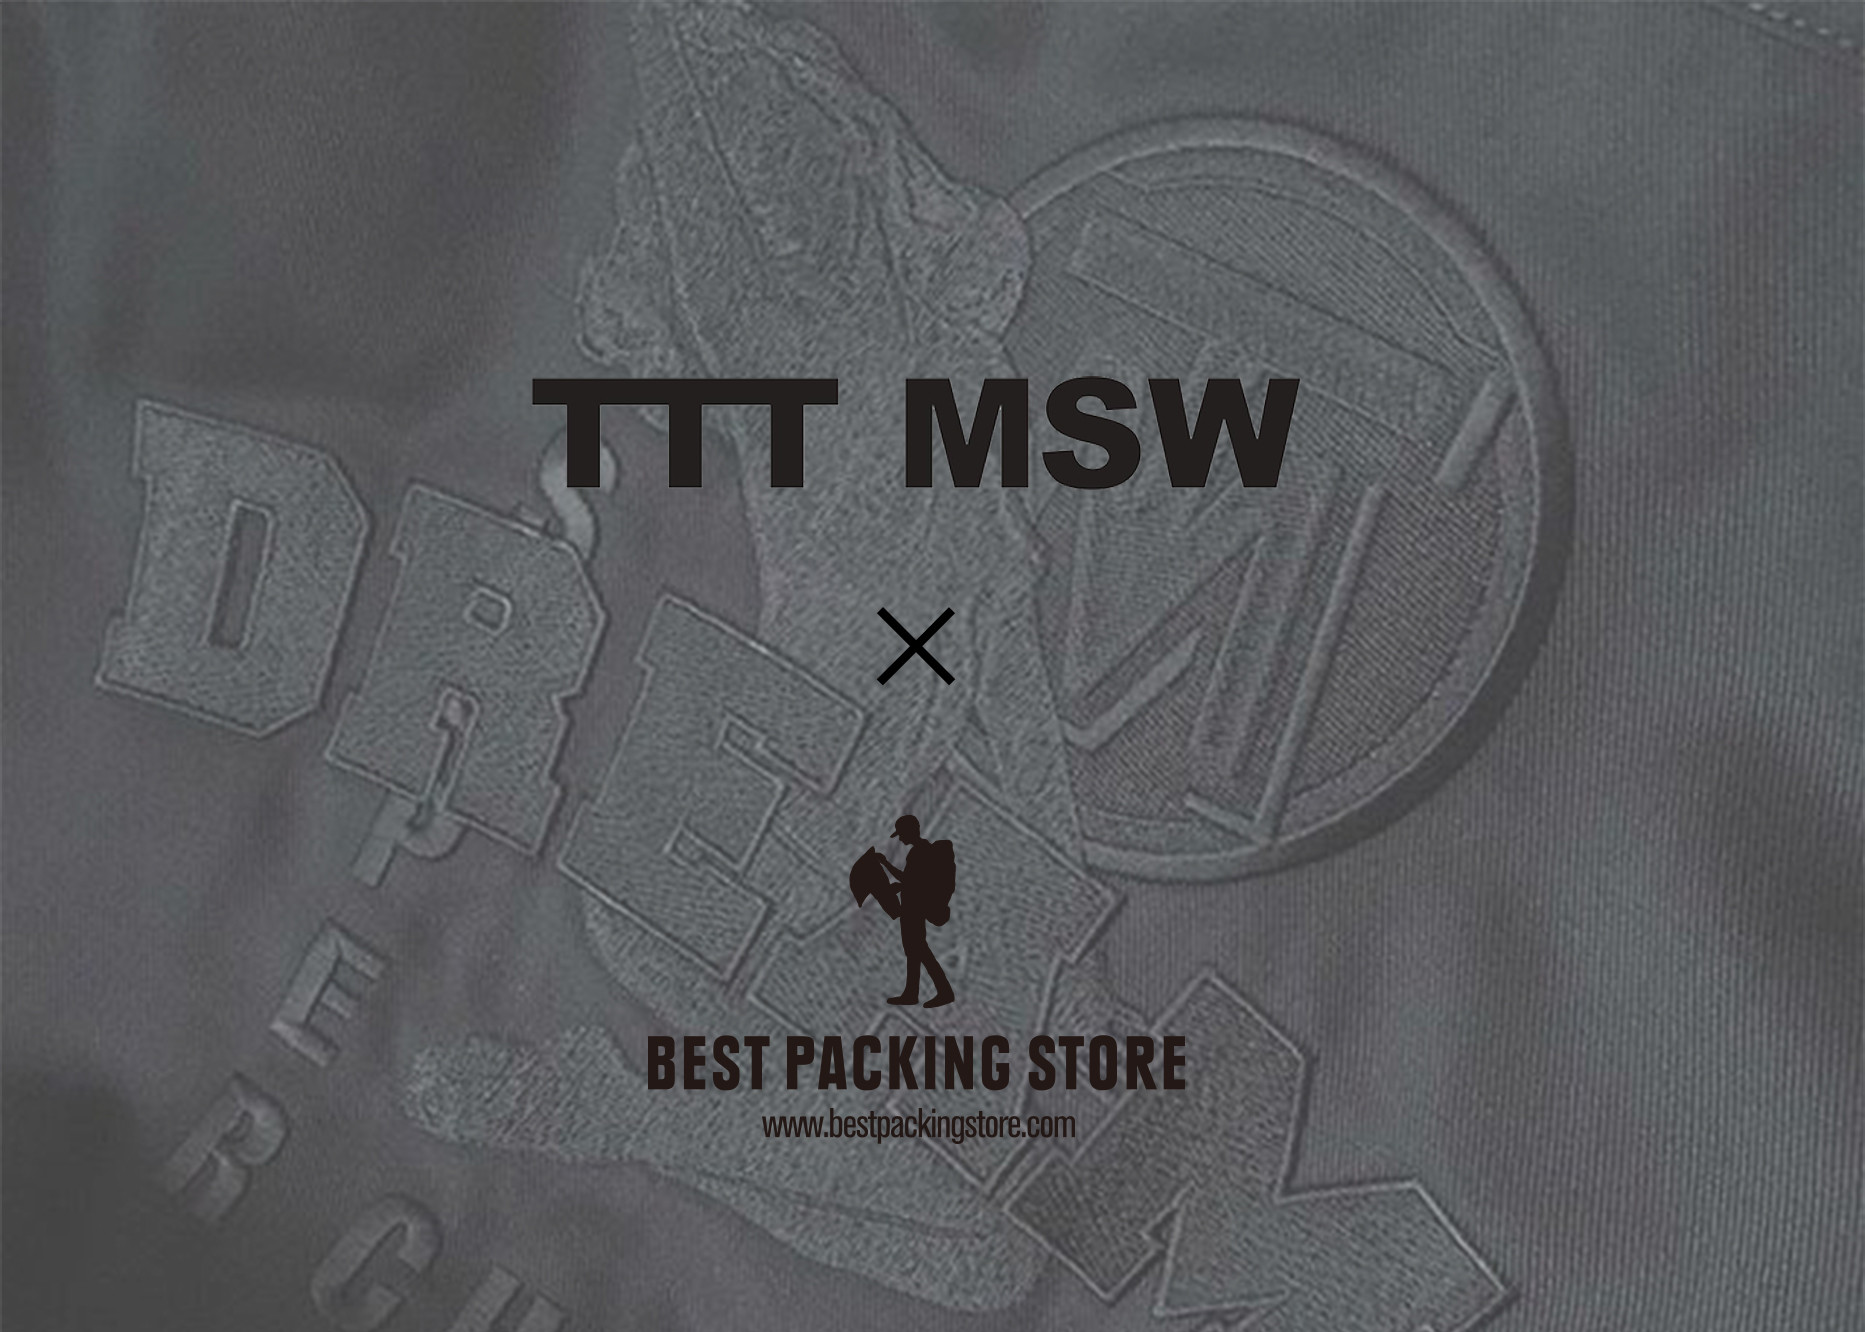 TTT_MSW × BEST PACKING STORE